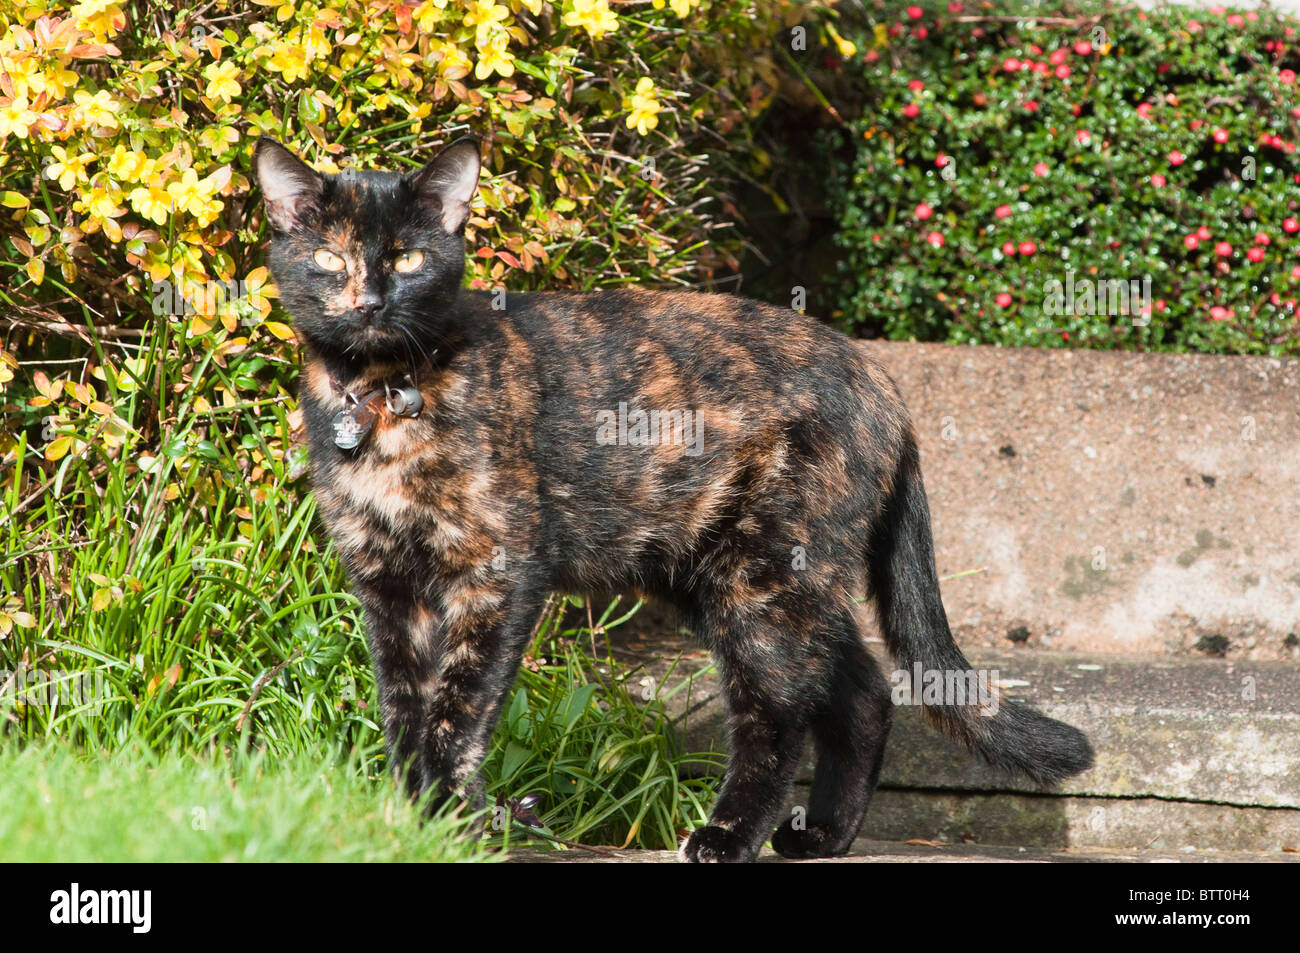 Adult female brindle tortoiseshell cat sitting seen in the Cotswold village of Broadway, Worcestershire, UK. - Stock Image